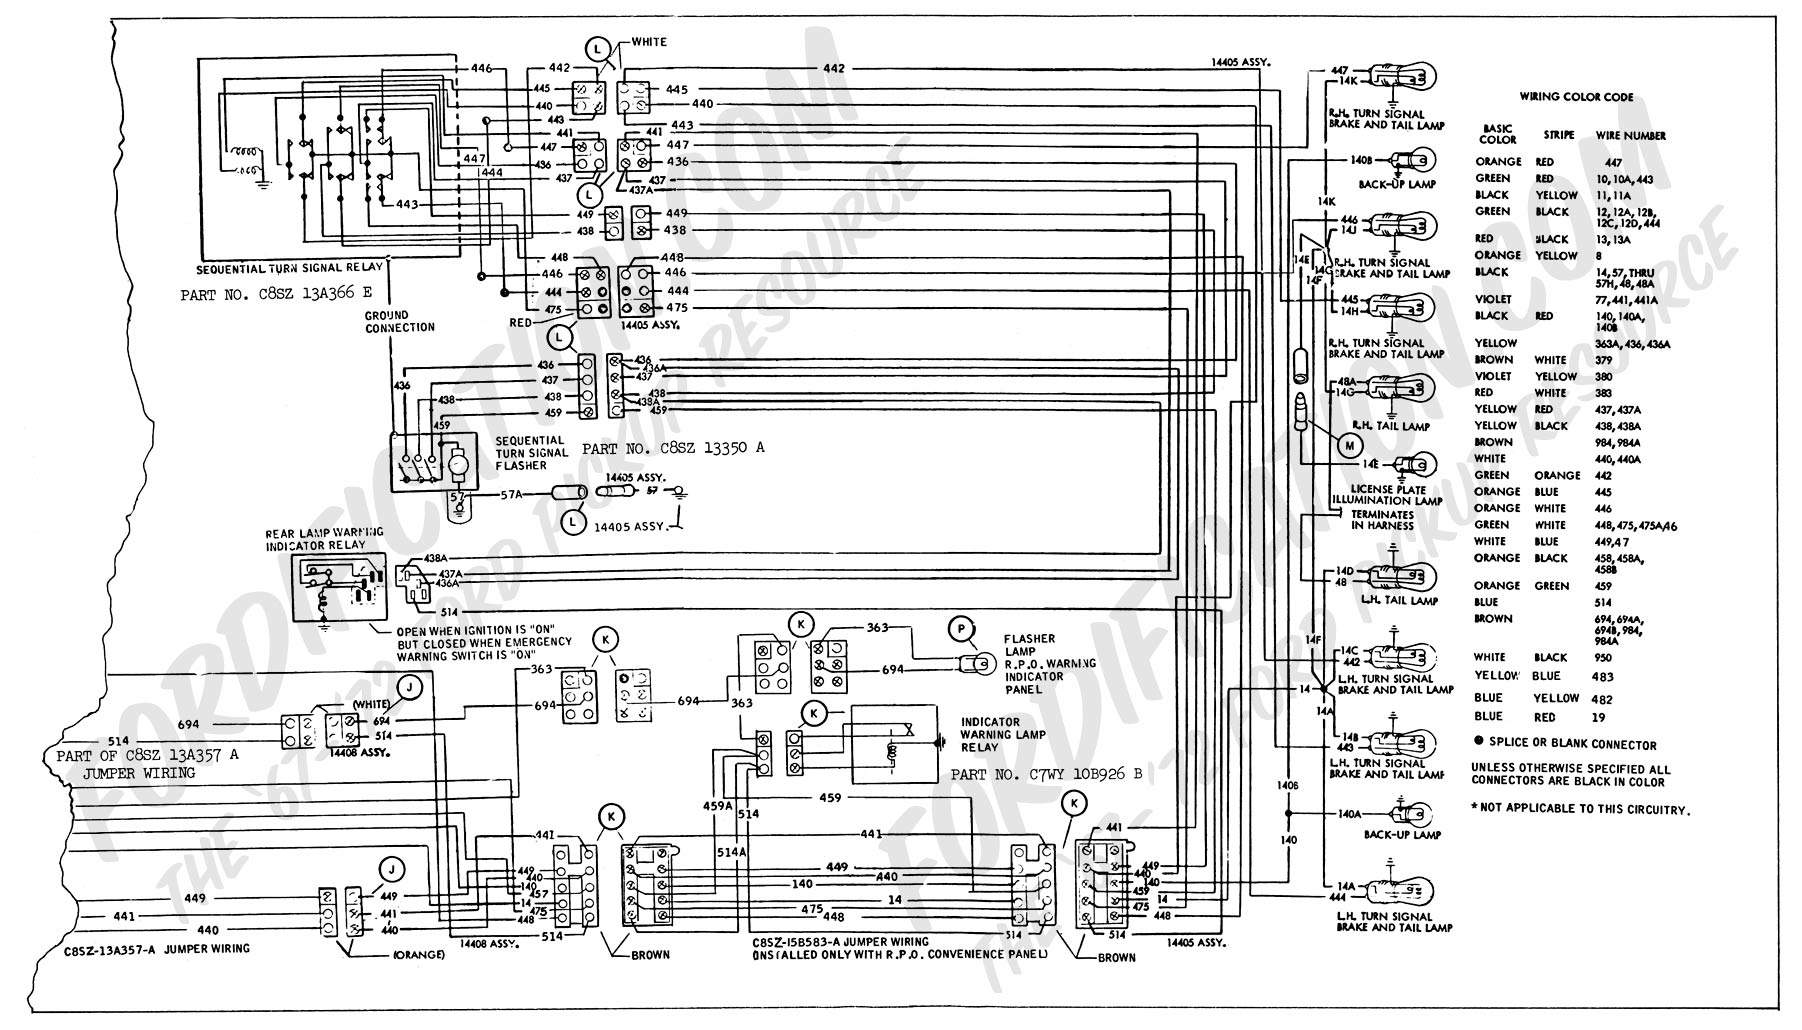 fordification com tsb database u2022 view topic article 1268 turn rh fordification com 1968 ford thunderbird wiring diagram 1968 ford thunderbird wiring diagram